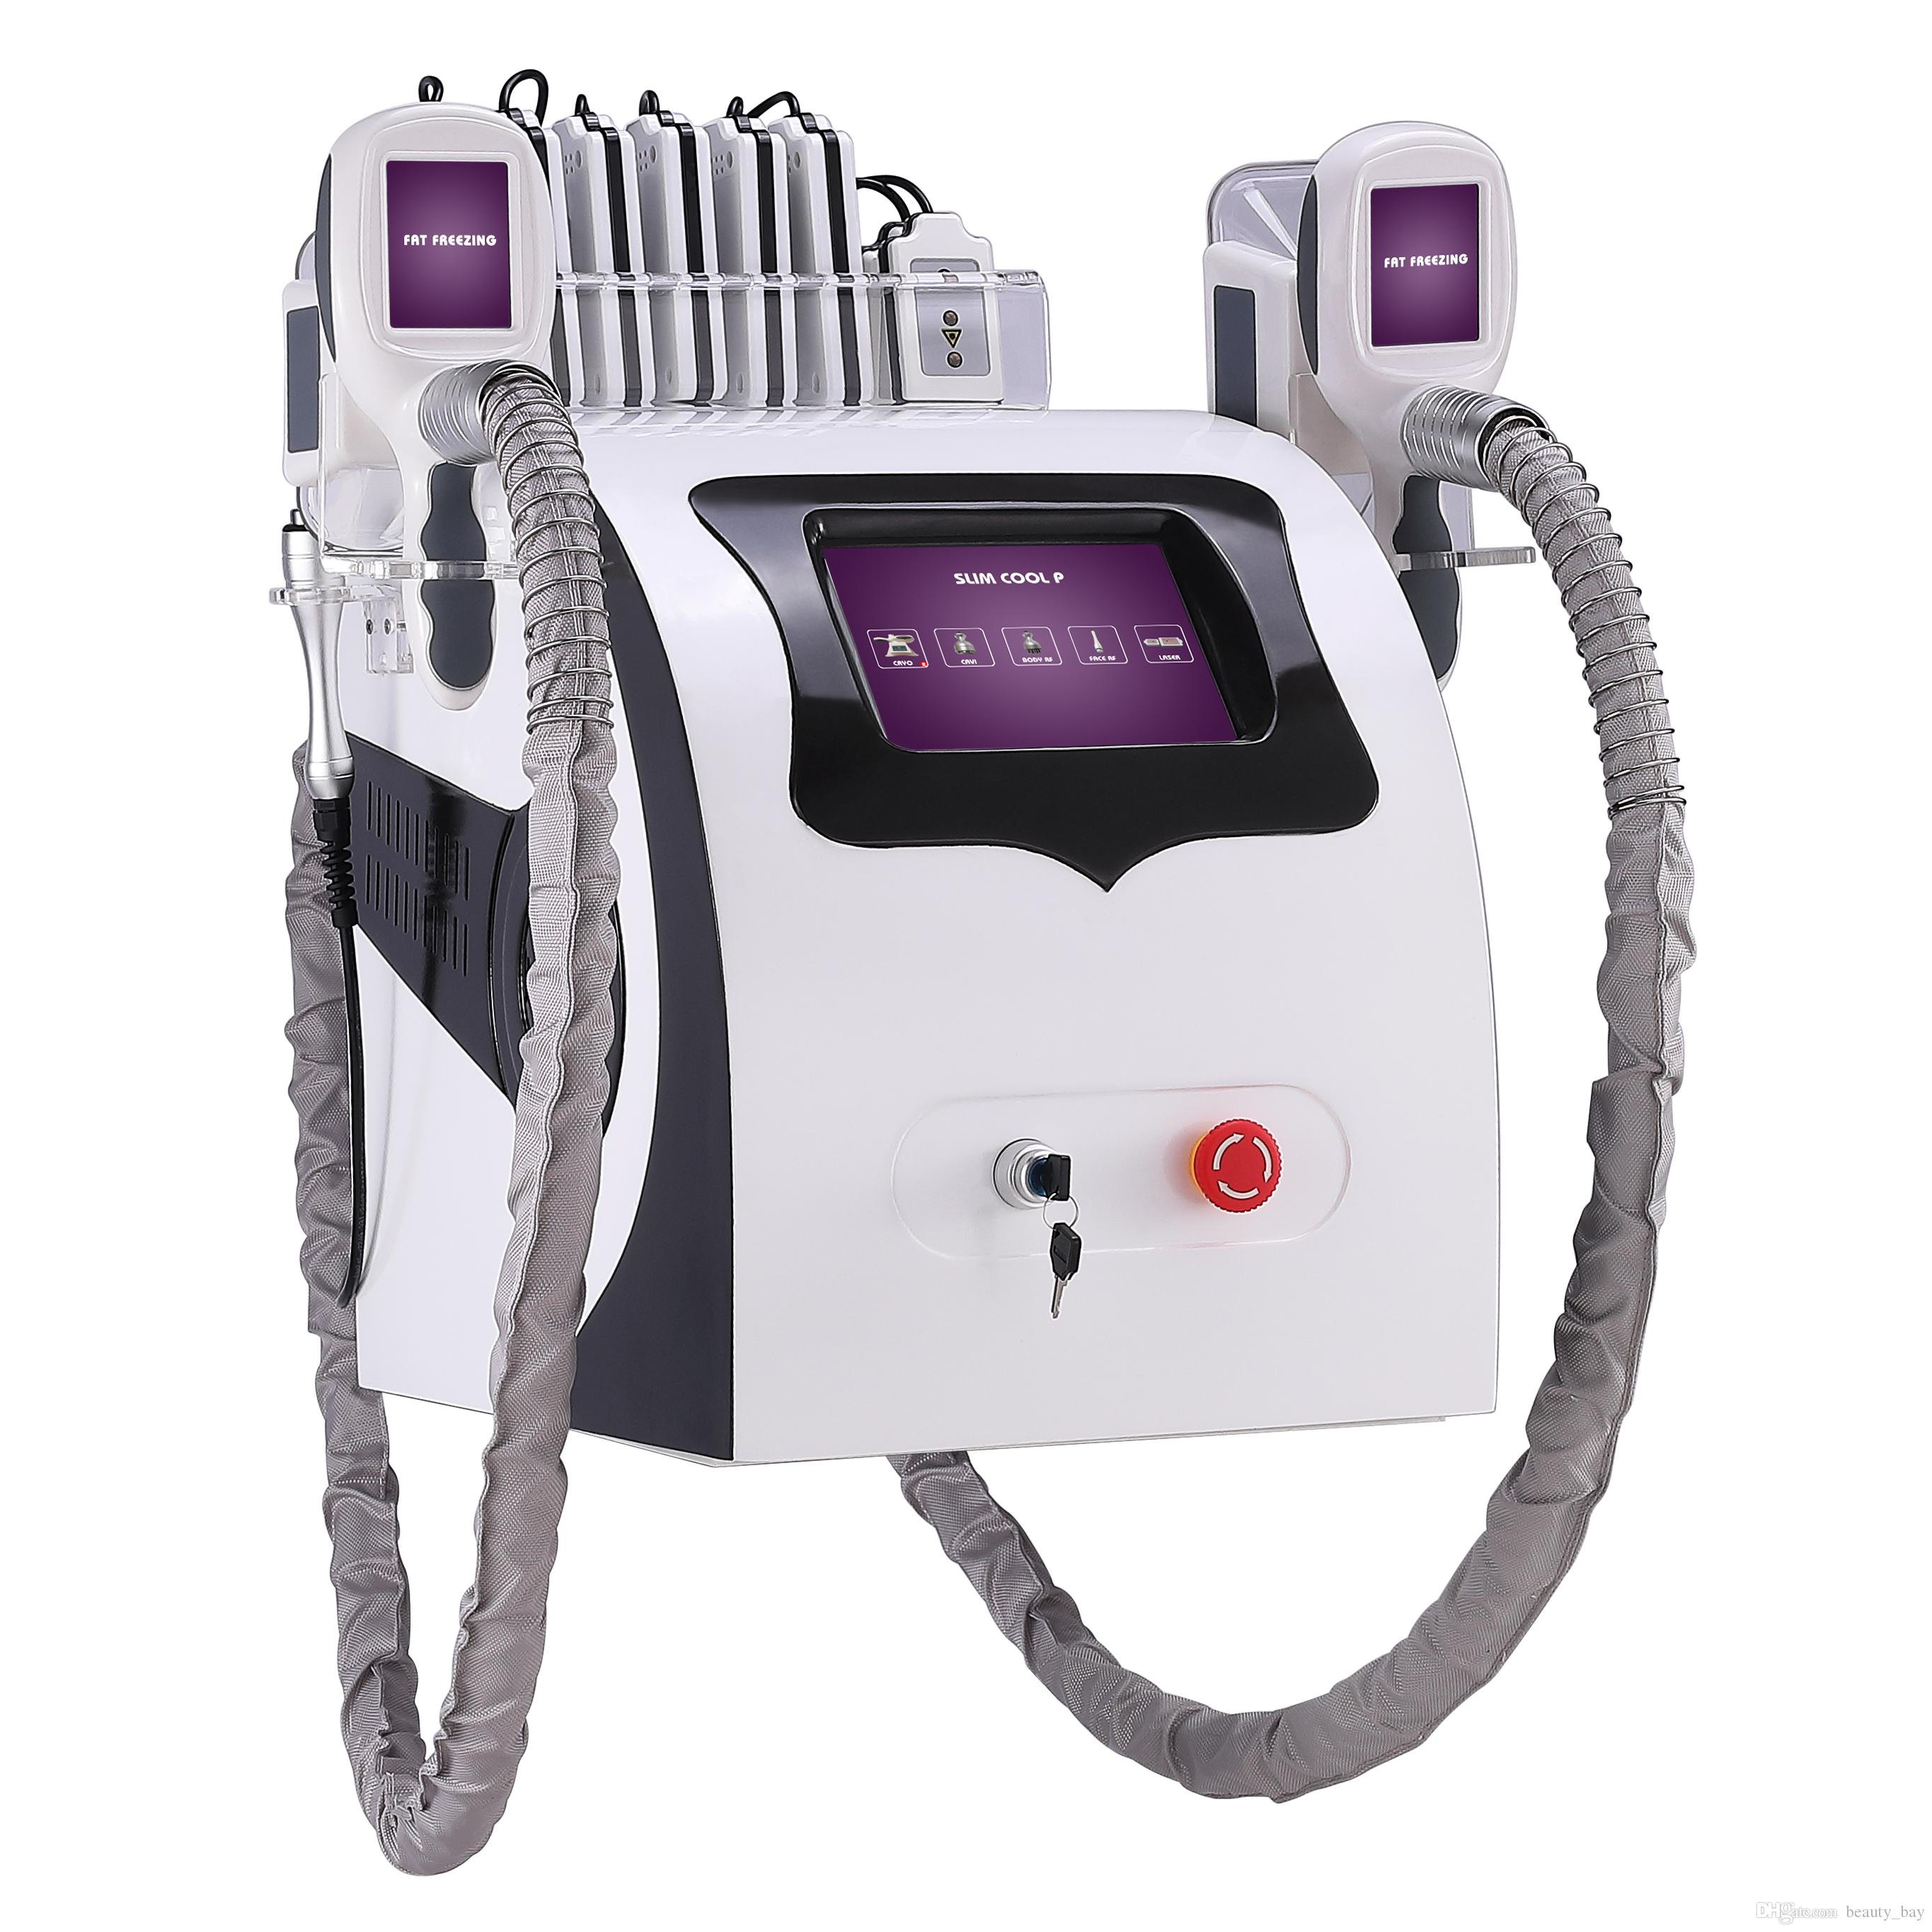 Cryolipolysis 지방 냉동 슬리밍 기계 CE 2 Cryo RF Cavitation Lipo 레이저 5 in 1 Weight Loss Beauty Equipment